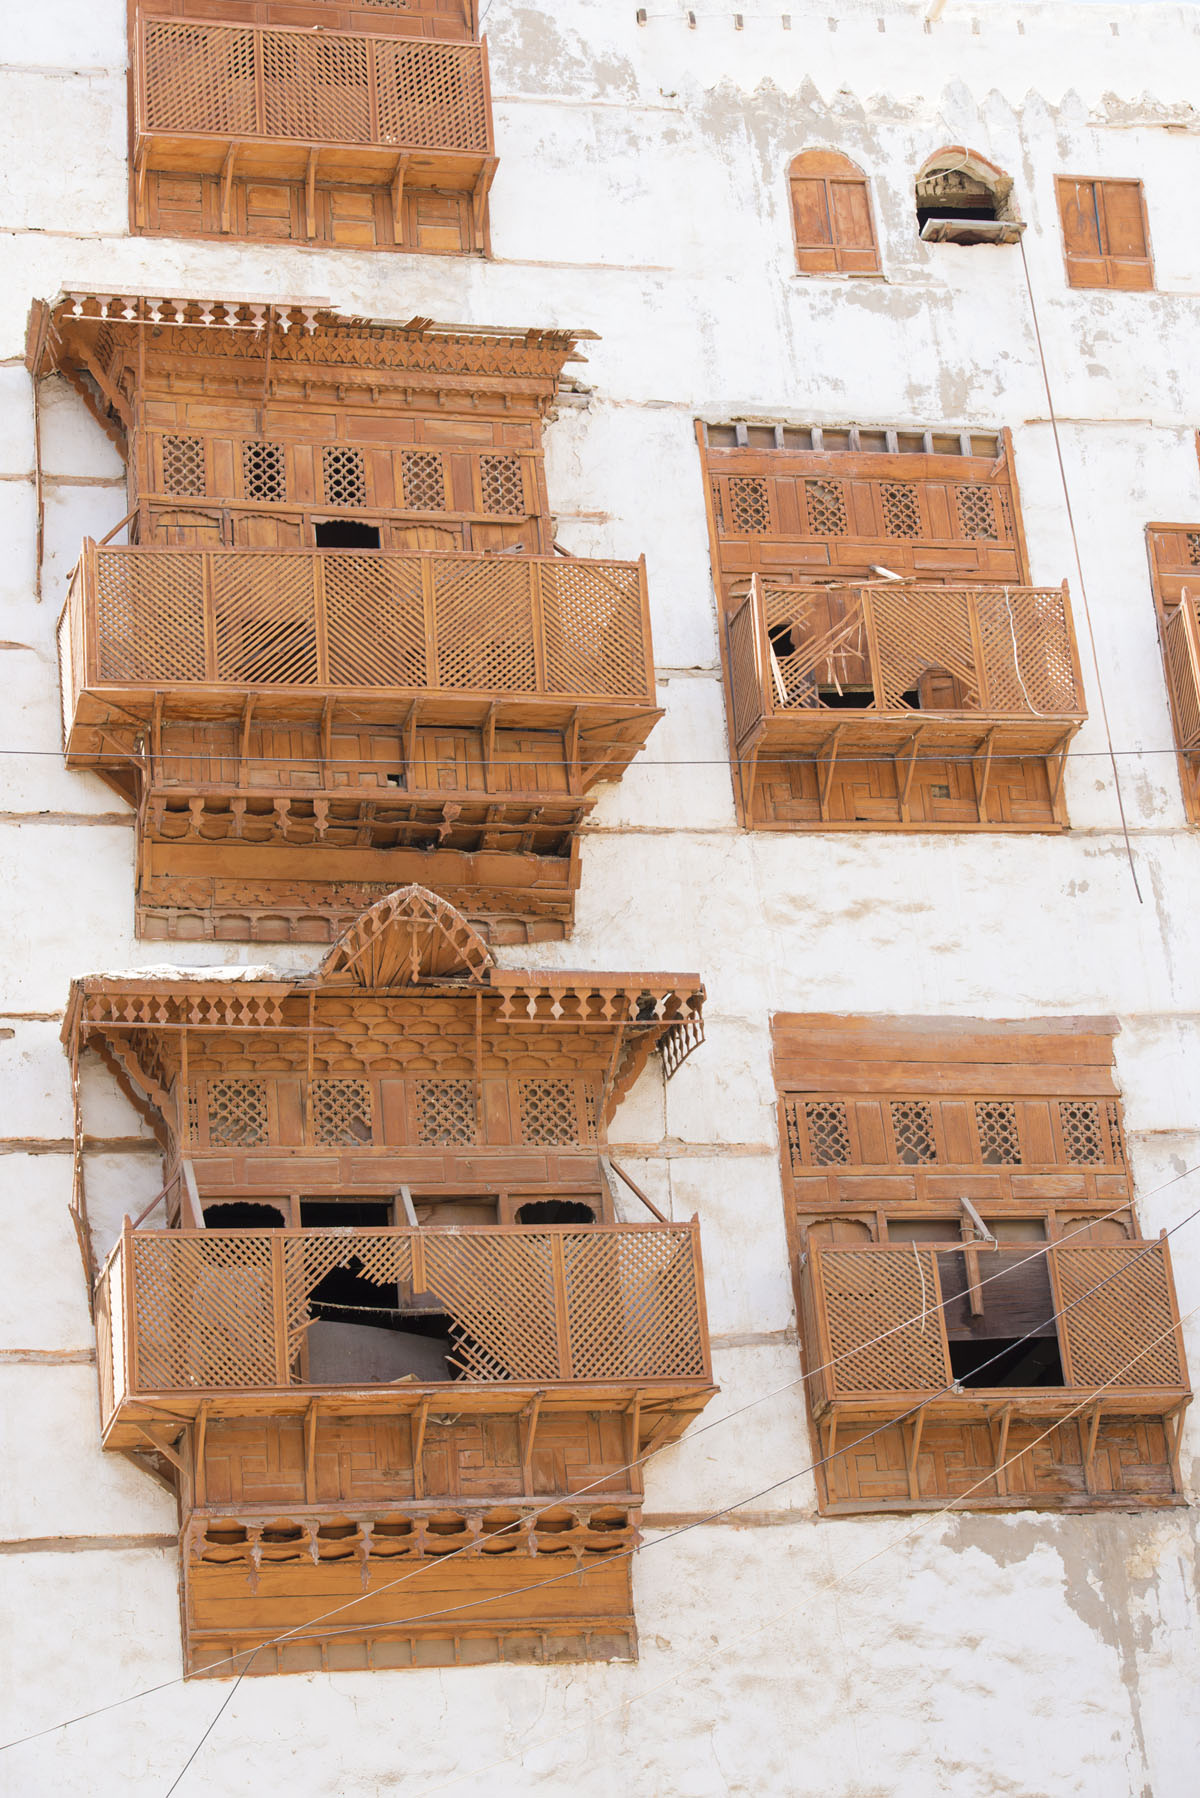 Al Balad, Historic City, Saudi Arabia, photographed by Tom Till